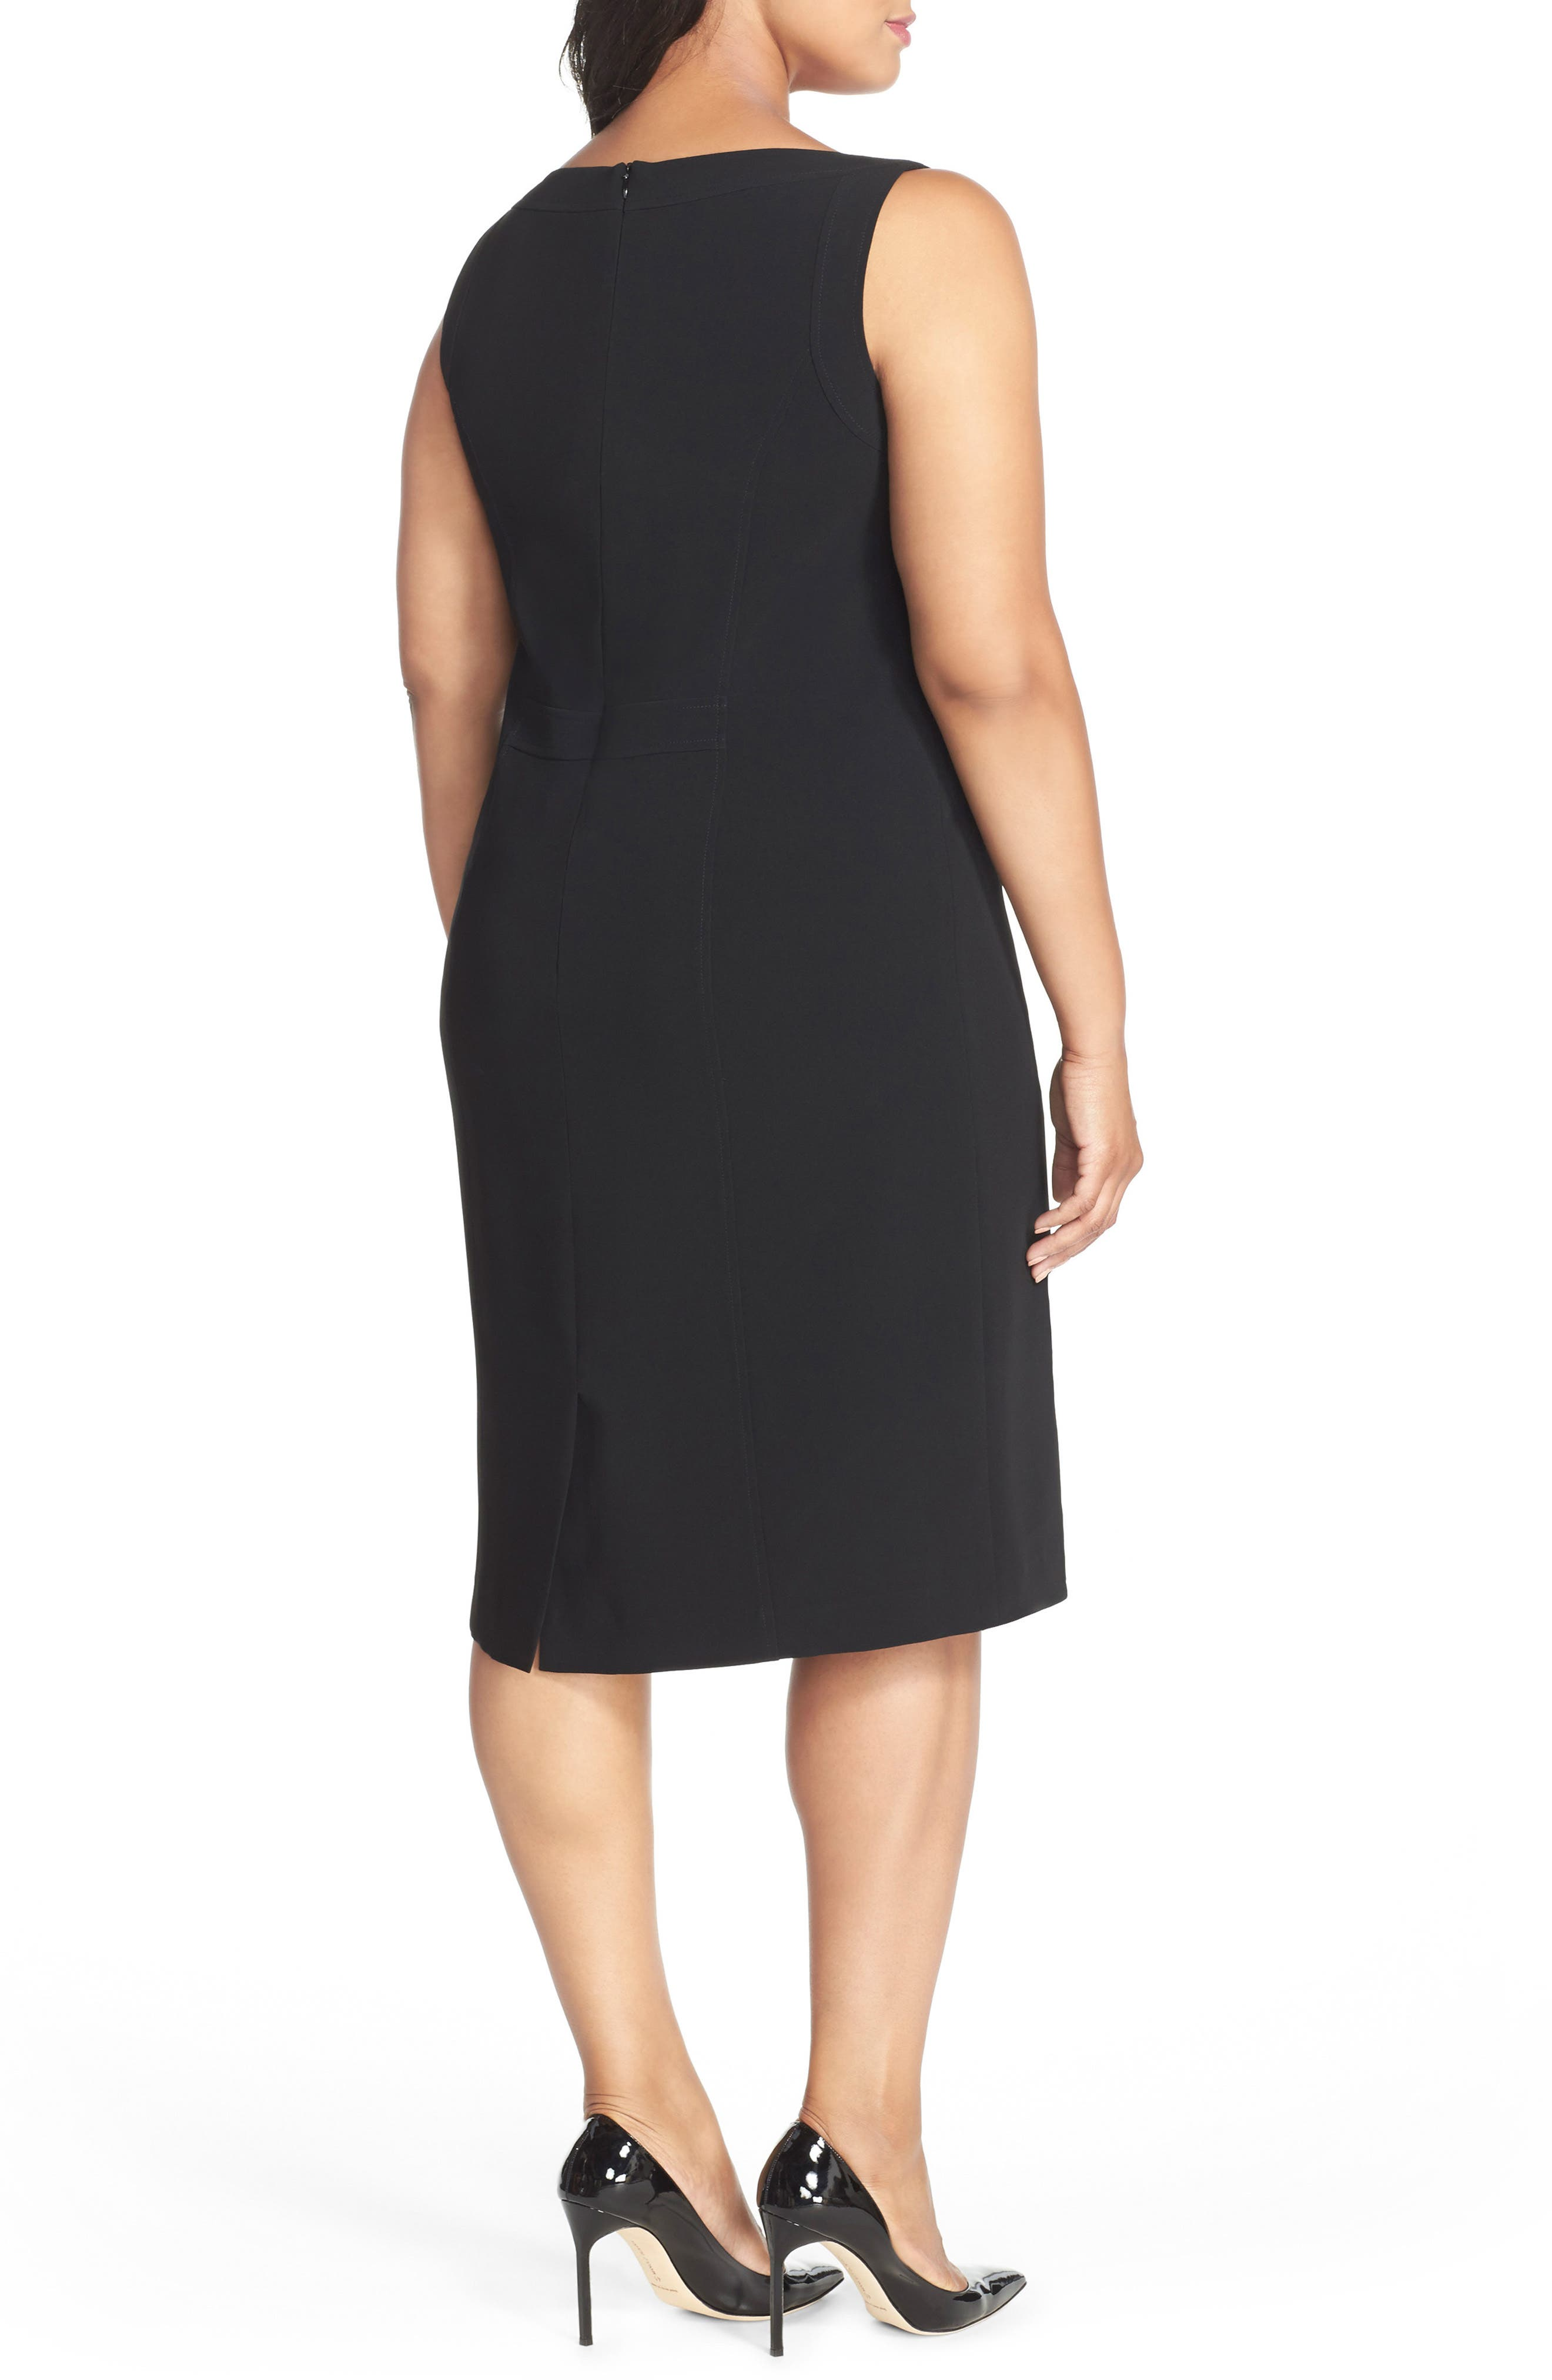 LOUBEN, Sleeveless Suiting Sheath Dress, Alternate thumbnail 2, color, BLACK